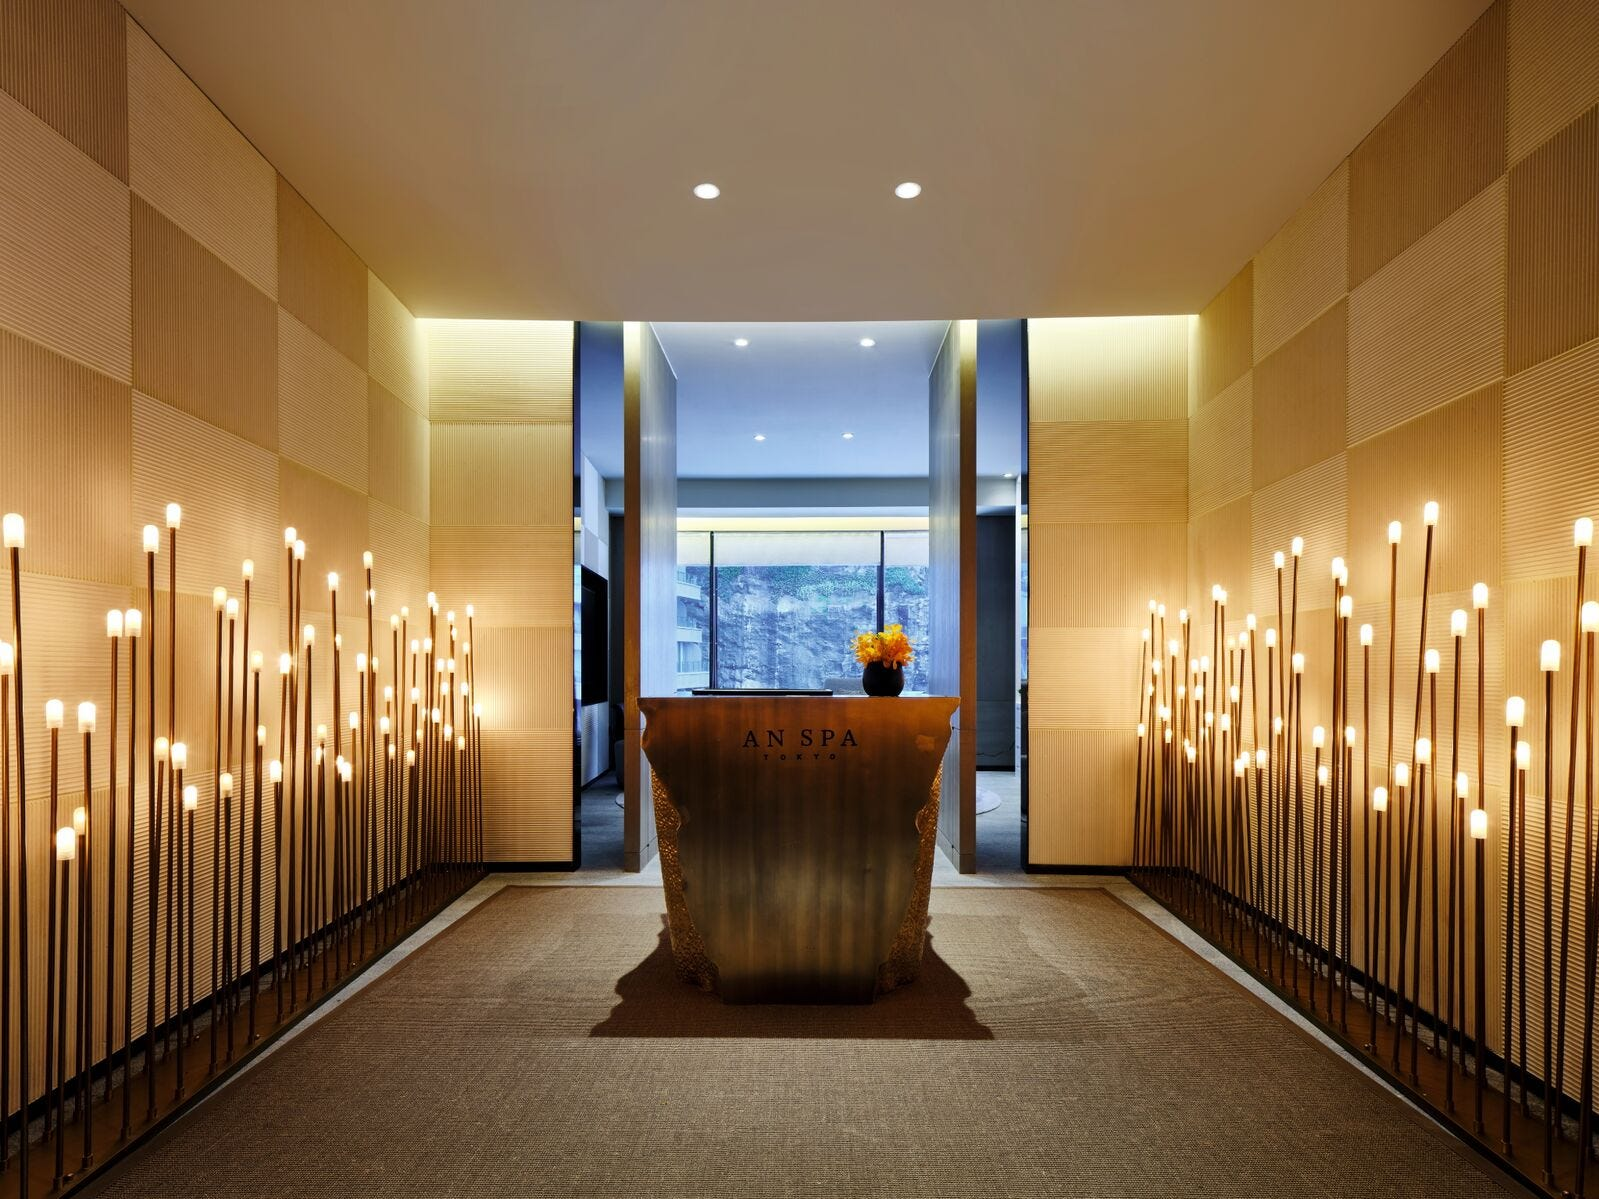 Even the torch-lined entrance to the spa is made to transport you away from city life and into an oasis overlooking the quarry.